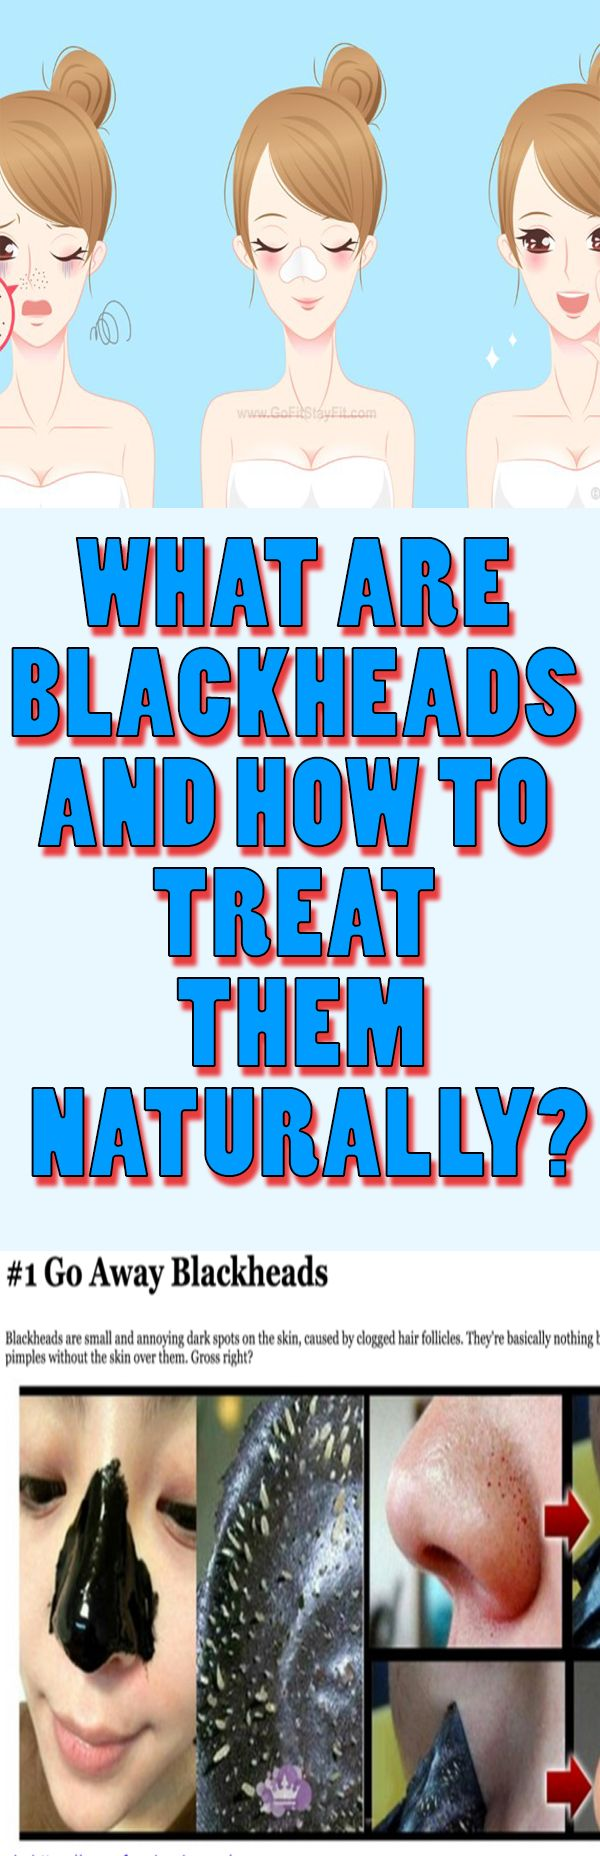 What are Blackheads and How to Treat Them Naturally?